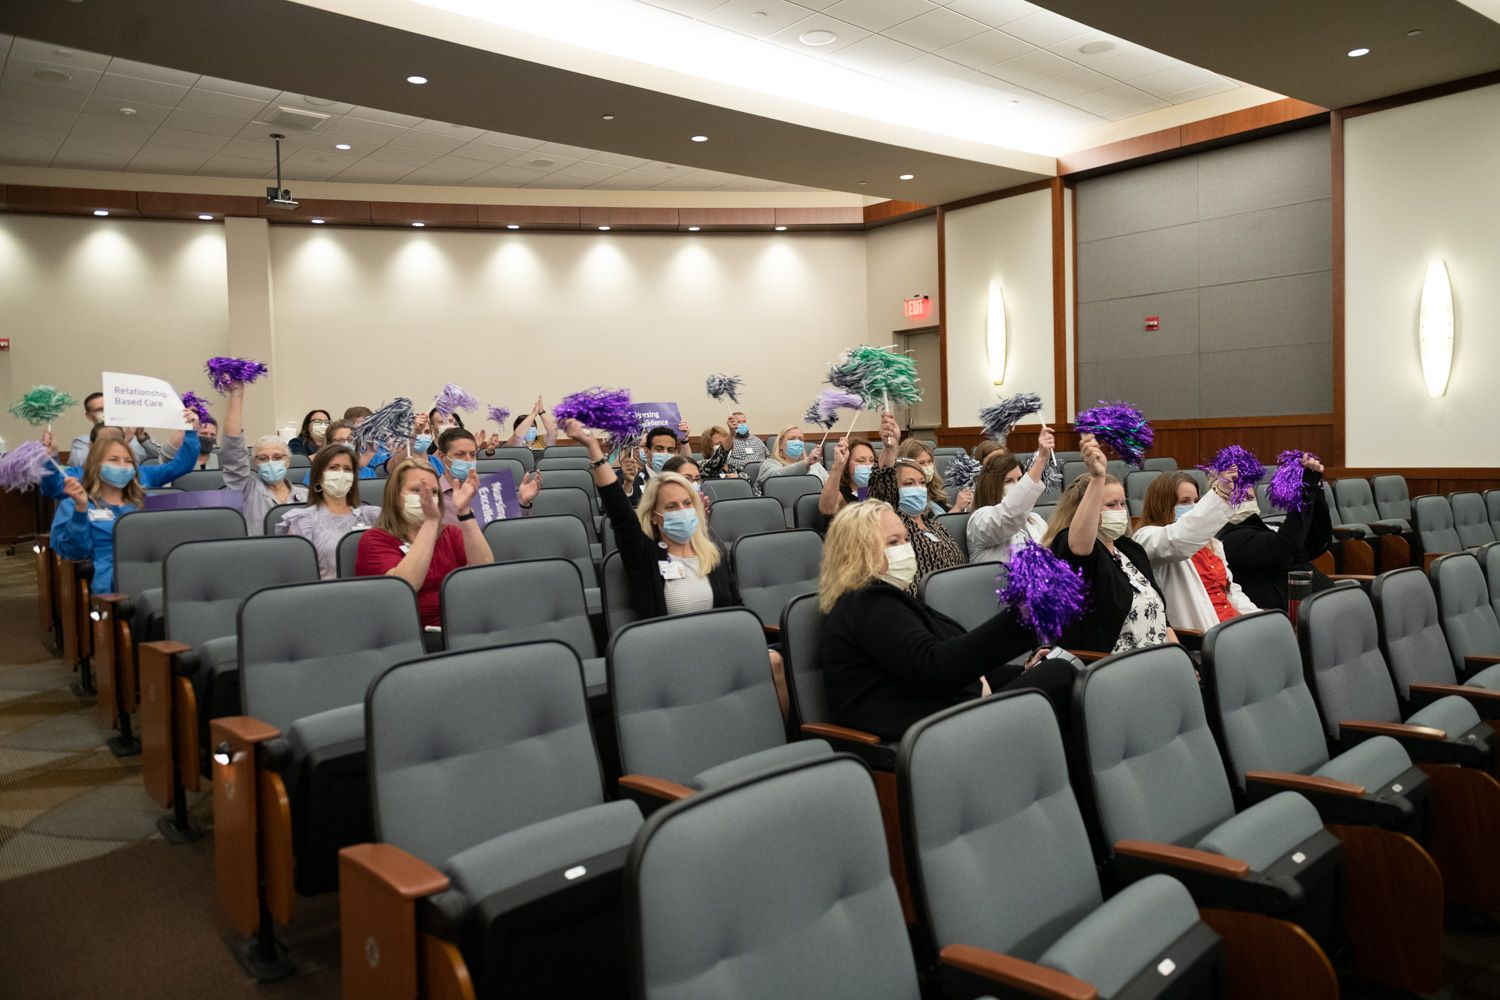 Northwestern Medicine Kishwaukee Hospital staff celebrate earning the highest accreditation possible for their work during the pandemic. (Photo provided)